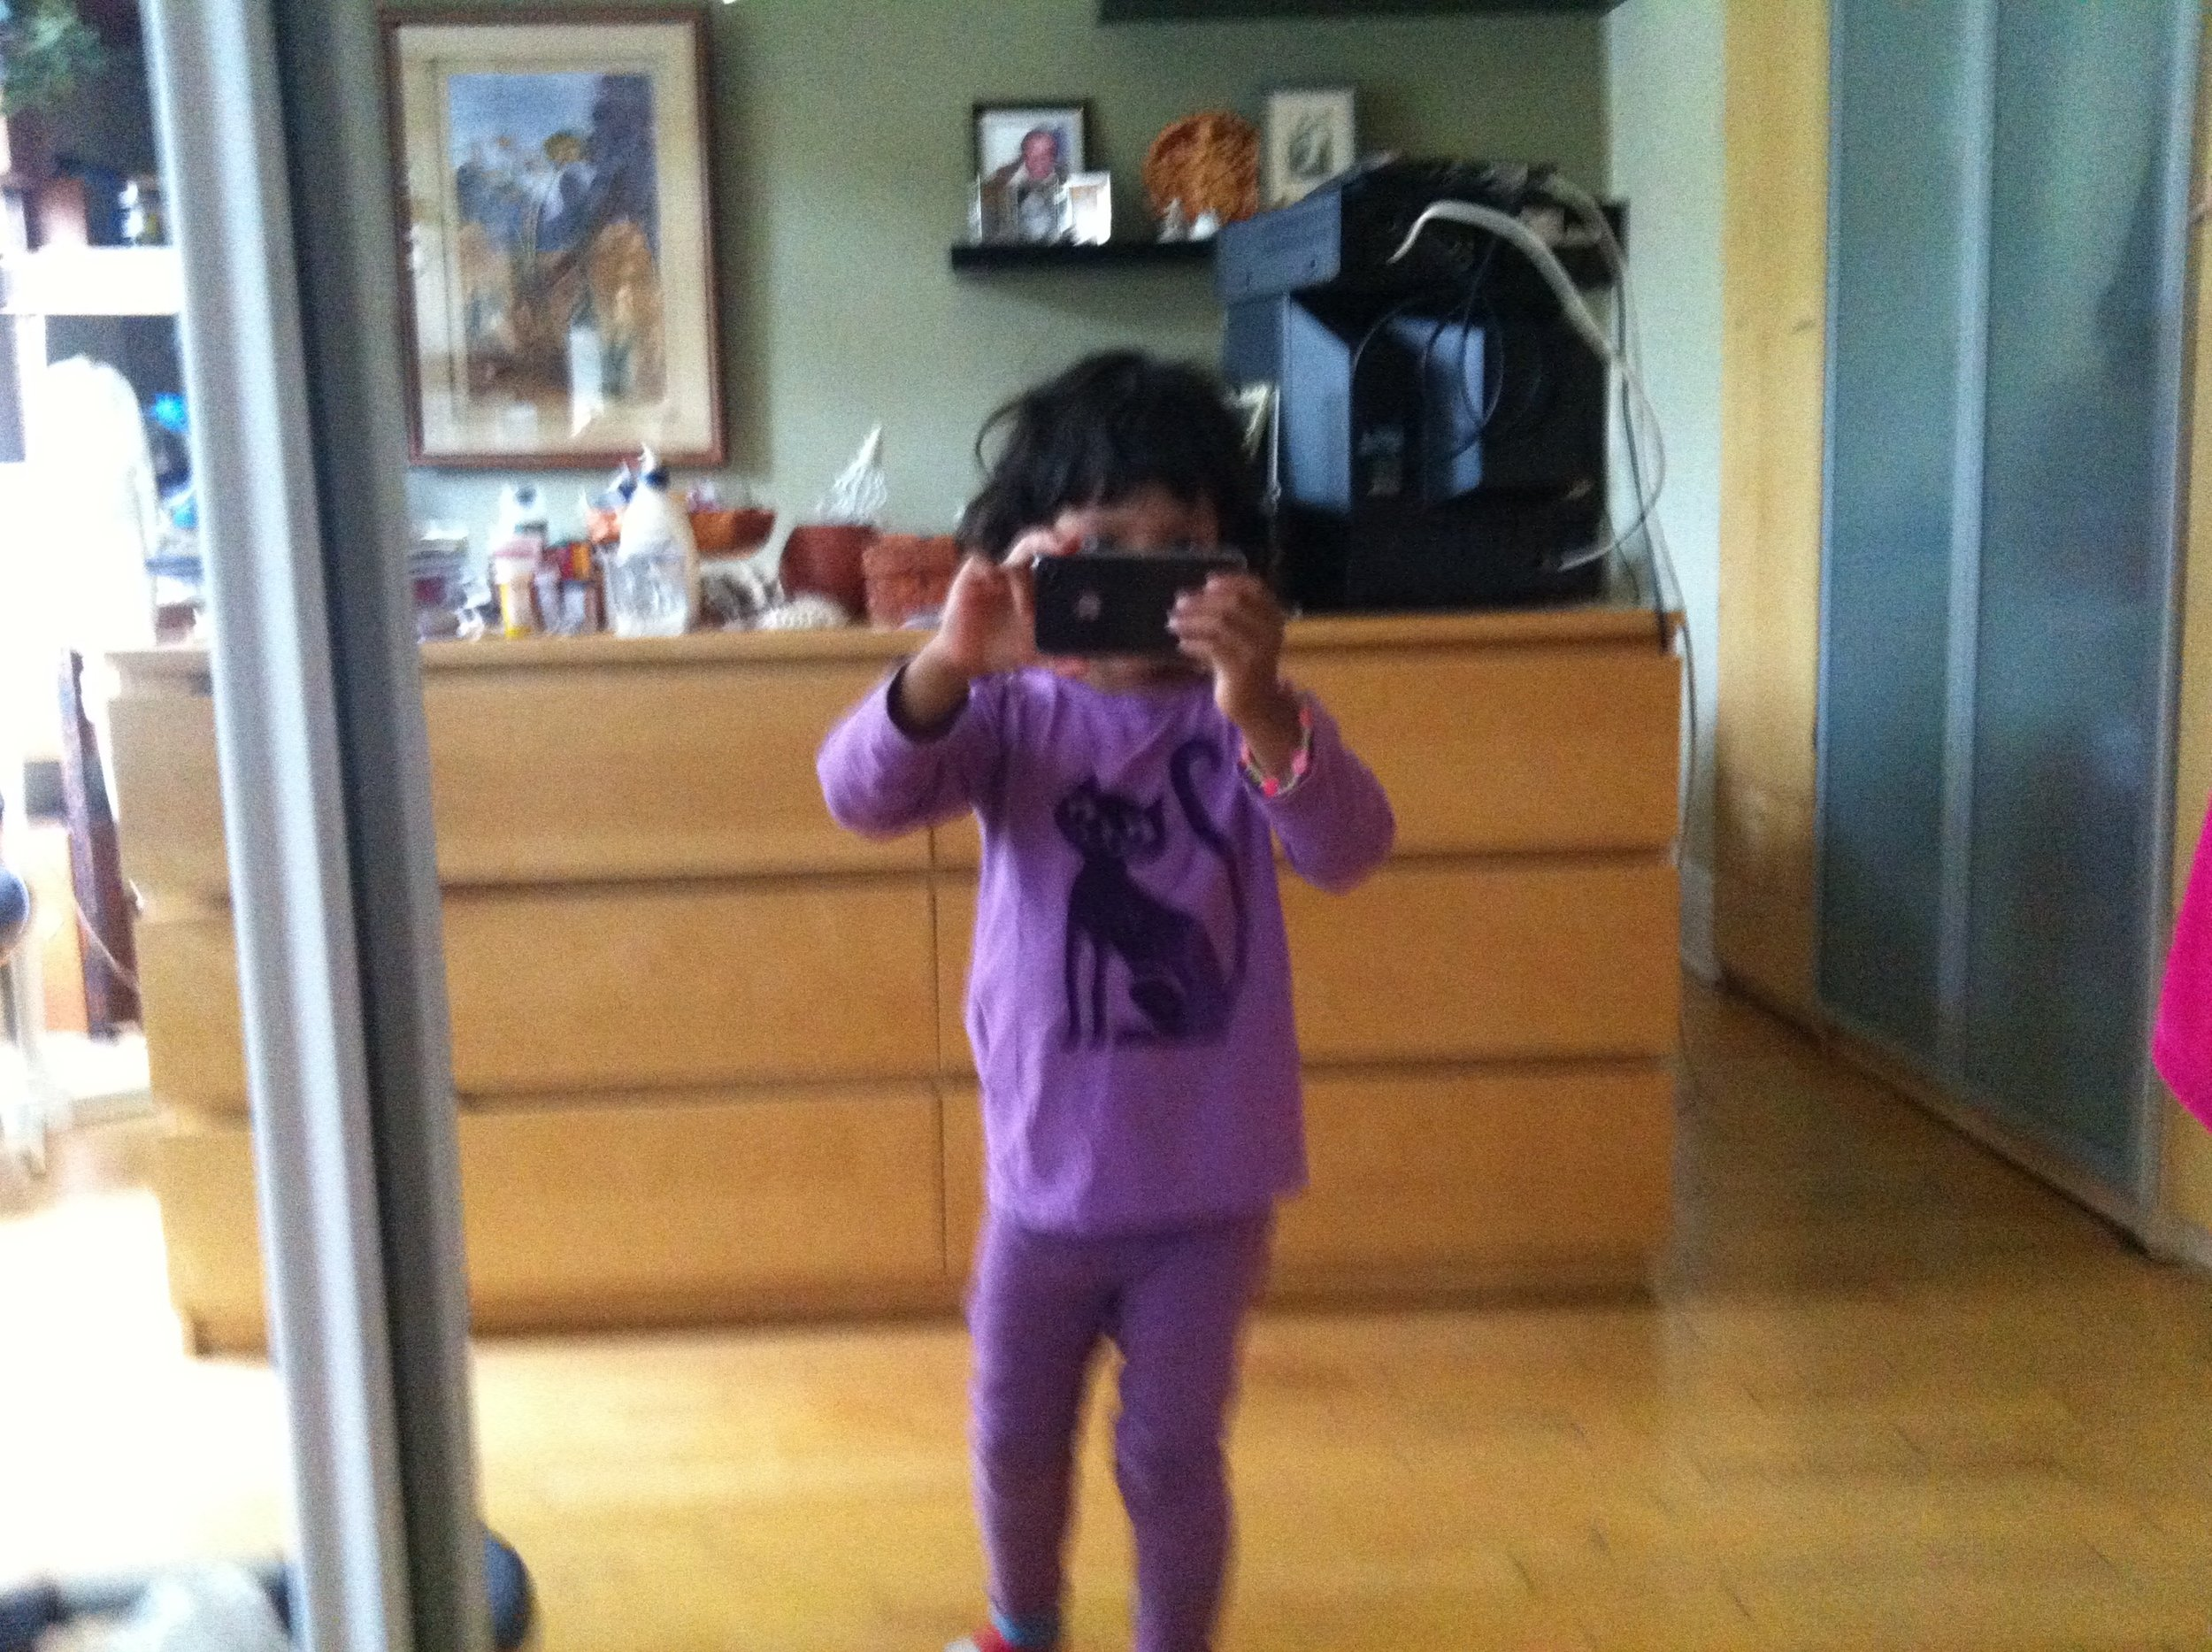 Leena with an iPhone 4. Photographed by Leena. Around 2011. Toronto, Ontario. Digital photograph. Gift of the Sinha/Brendemühl family. Courtesy of The family Camera Network and the ROM.